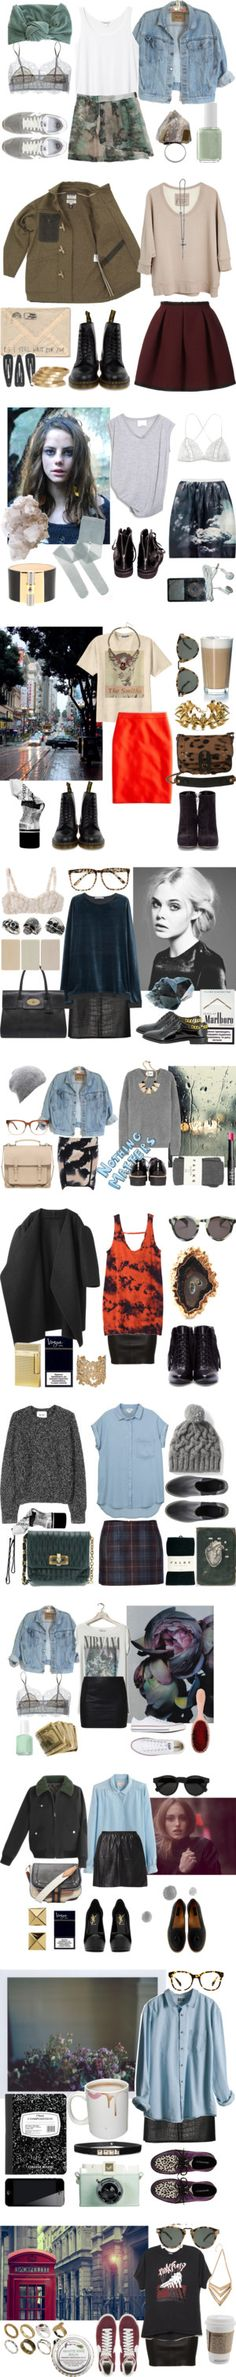 """Skirts"" by kelly-m-o on Polyvore"